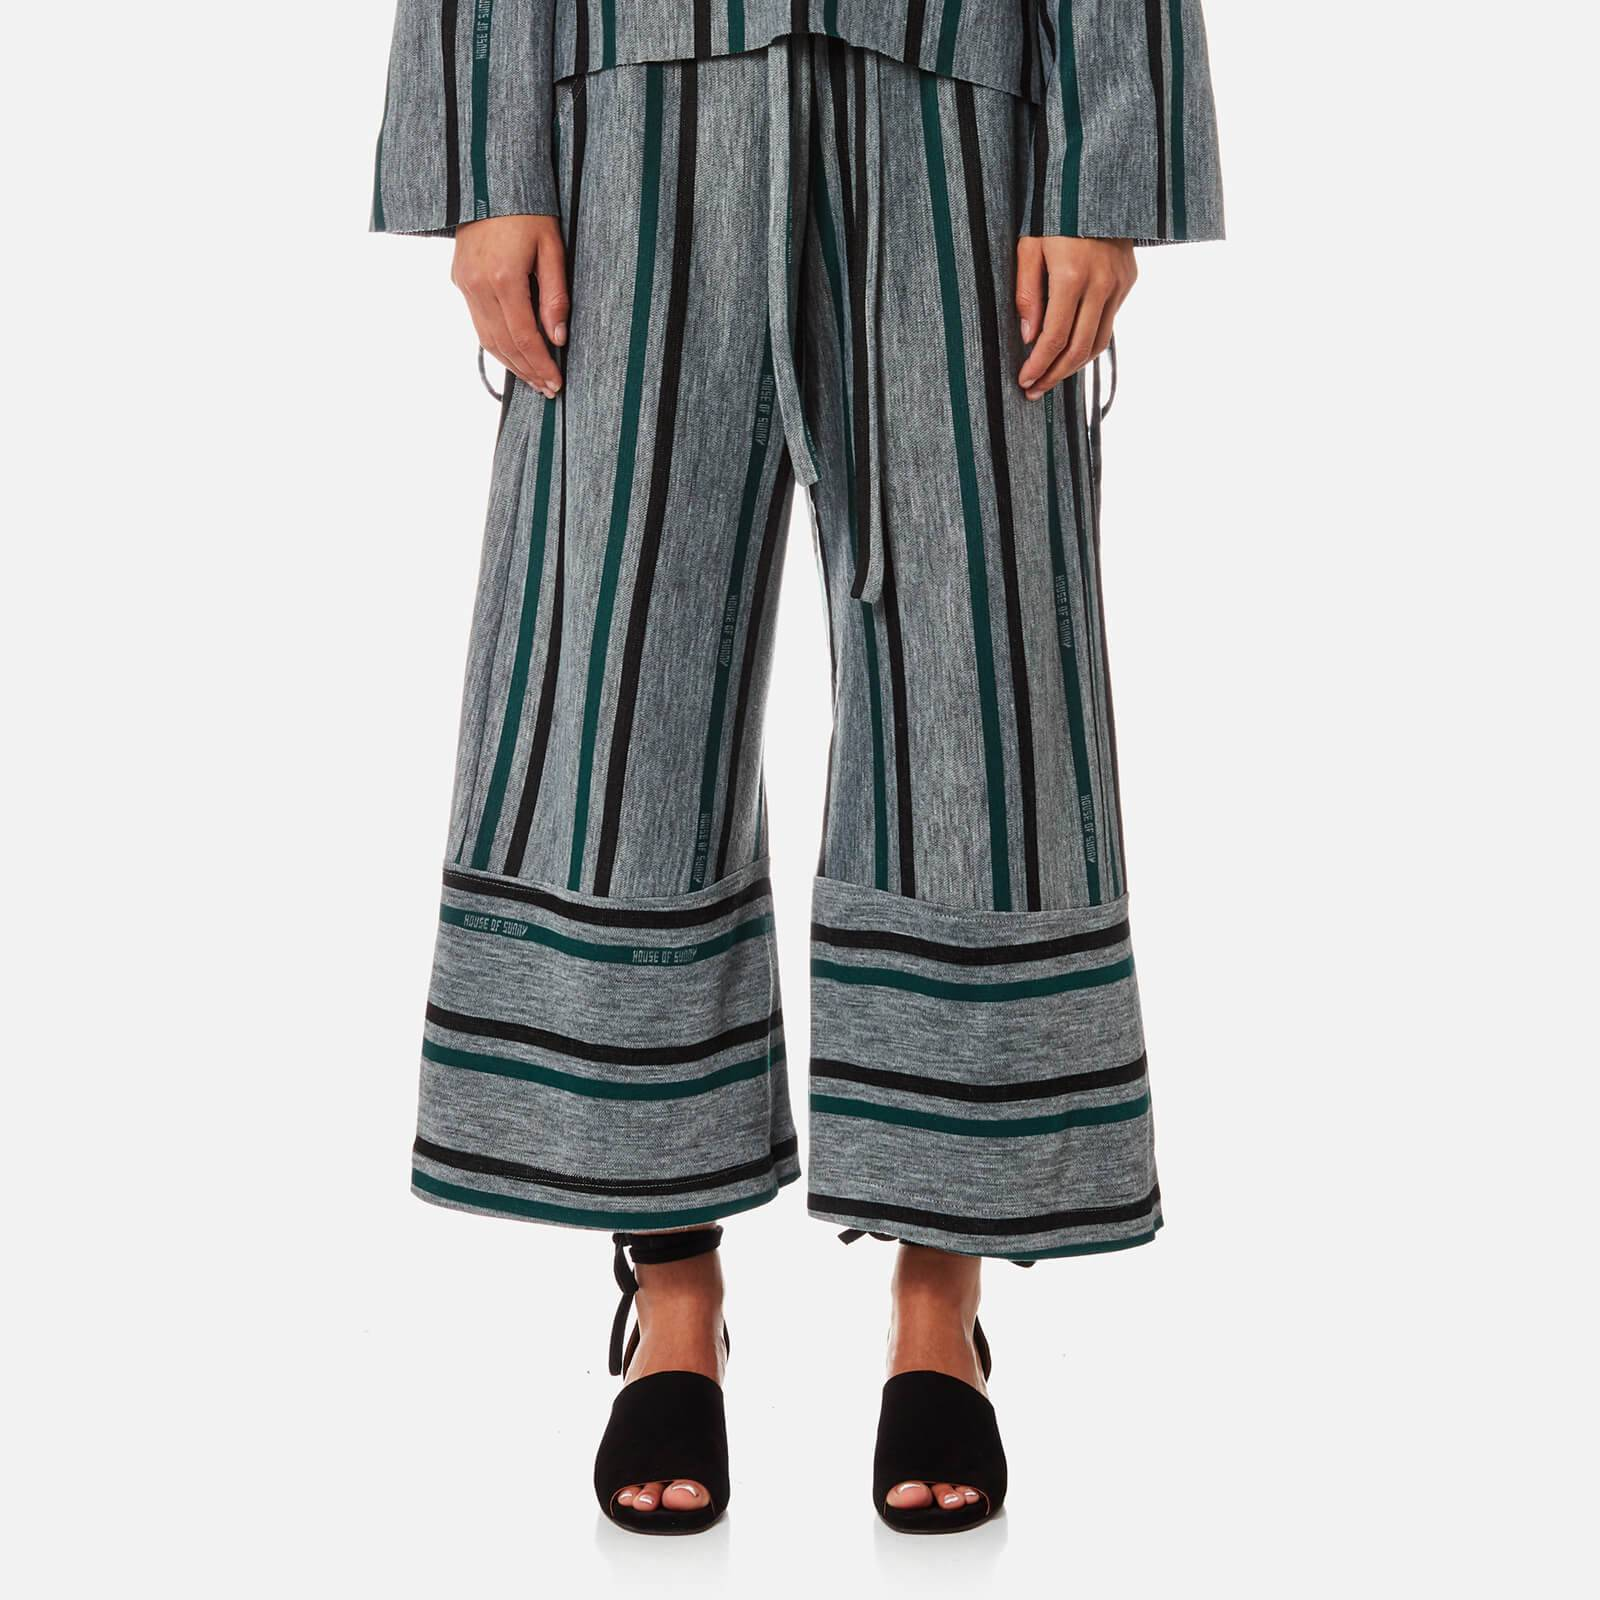 House of Sunny Women's Fit and Flare Culottes - Striped - UK 6 - Multi